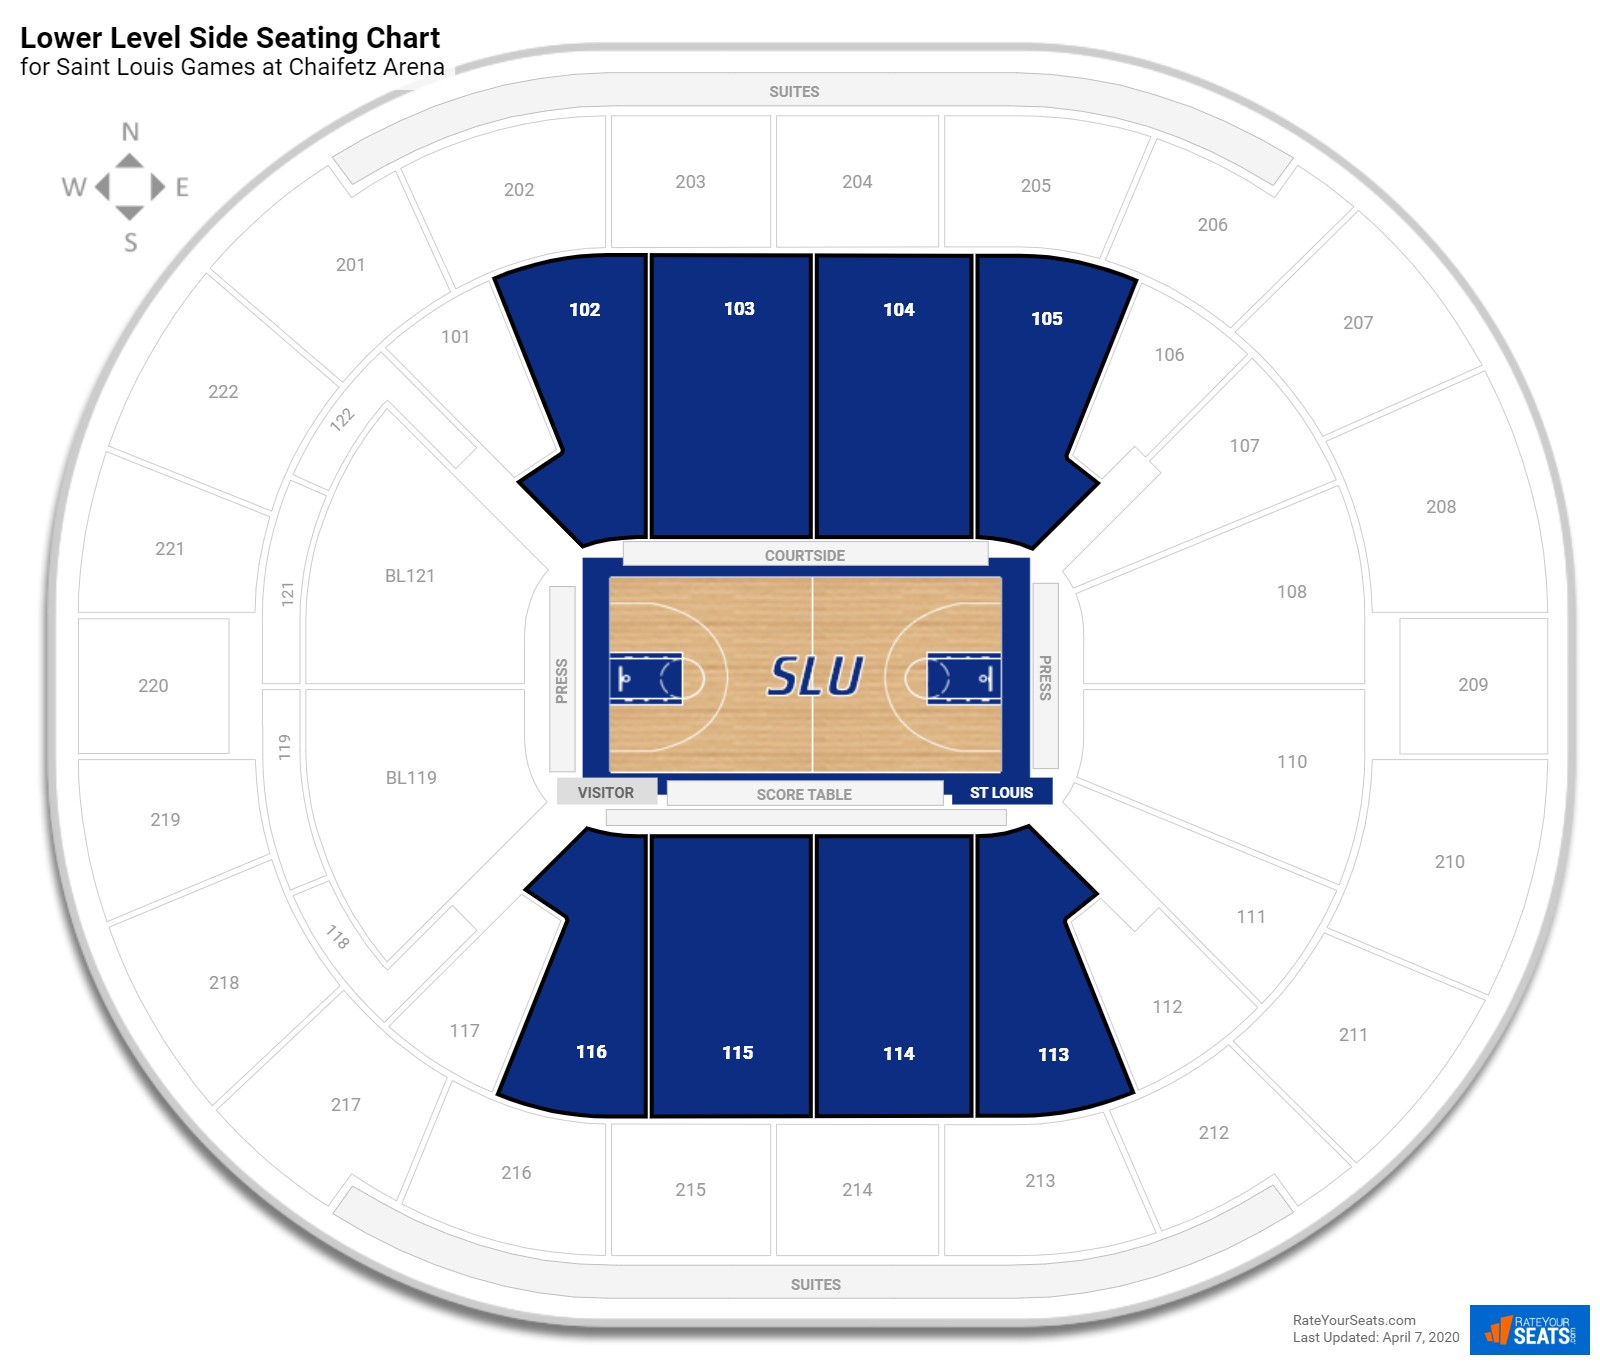 Chaifetz Arena Lower Level Side seating chart